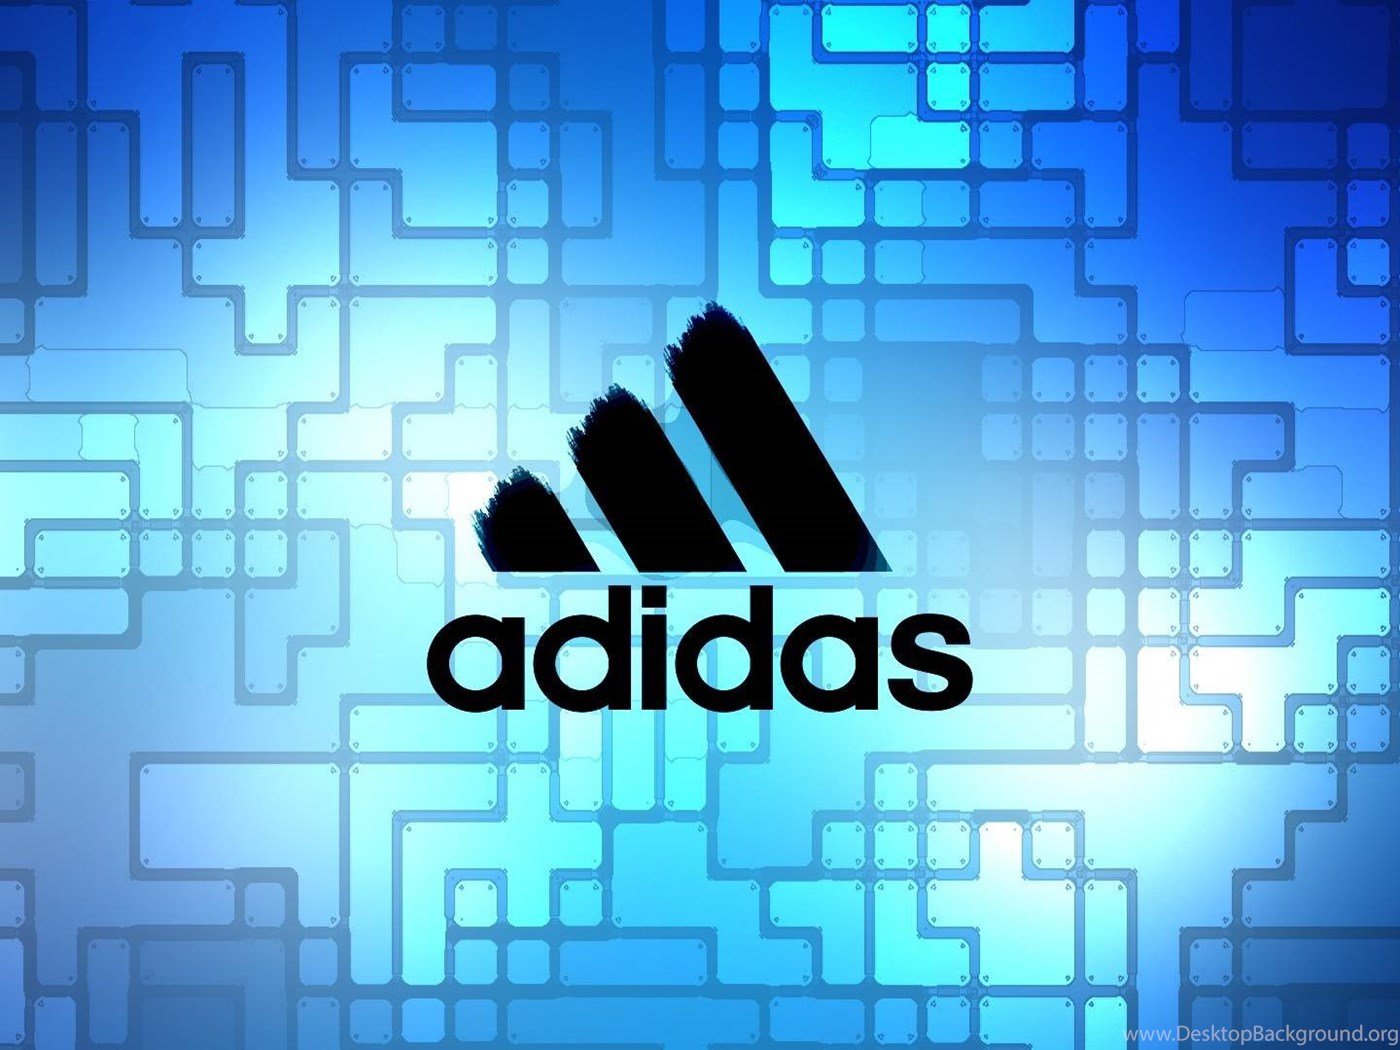 adidas background Best of adidas background- adidas logo android wallpaper hd source:android2youcom the gallery for cool adidas wallpapers source:incolorsclub red adidas iphone wallpaper 1186 source:ohlayscom adidas logo colors hd wallpapers for iphone is a fantastic source:pinterestcom adidas theme for windows.